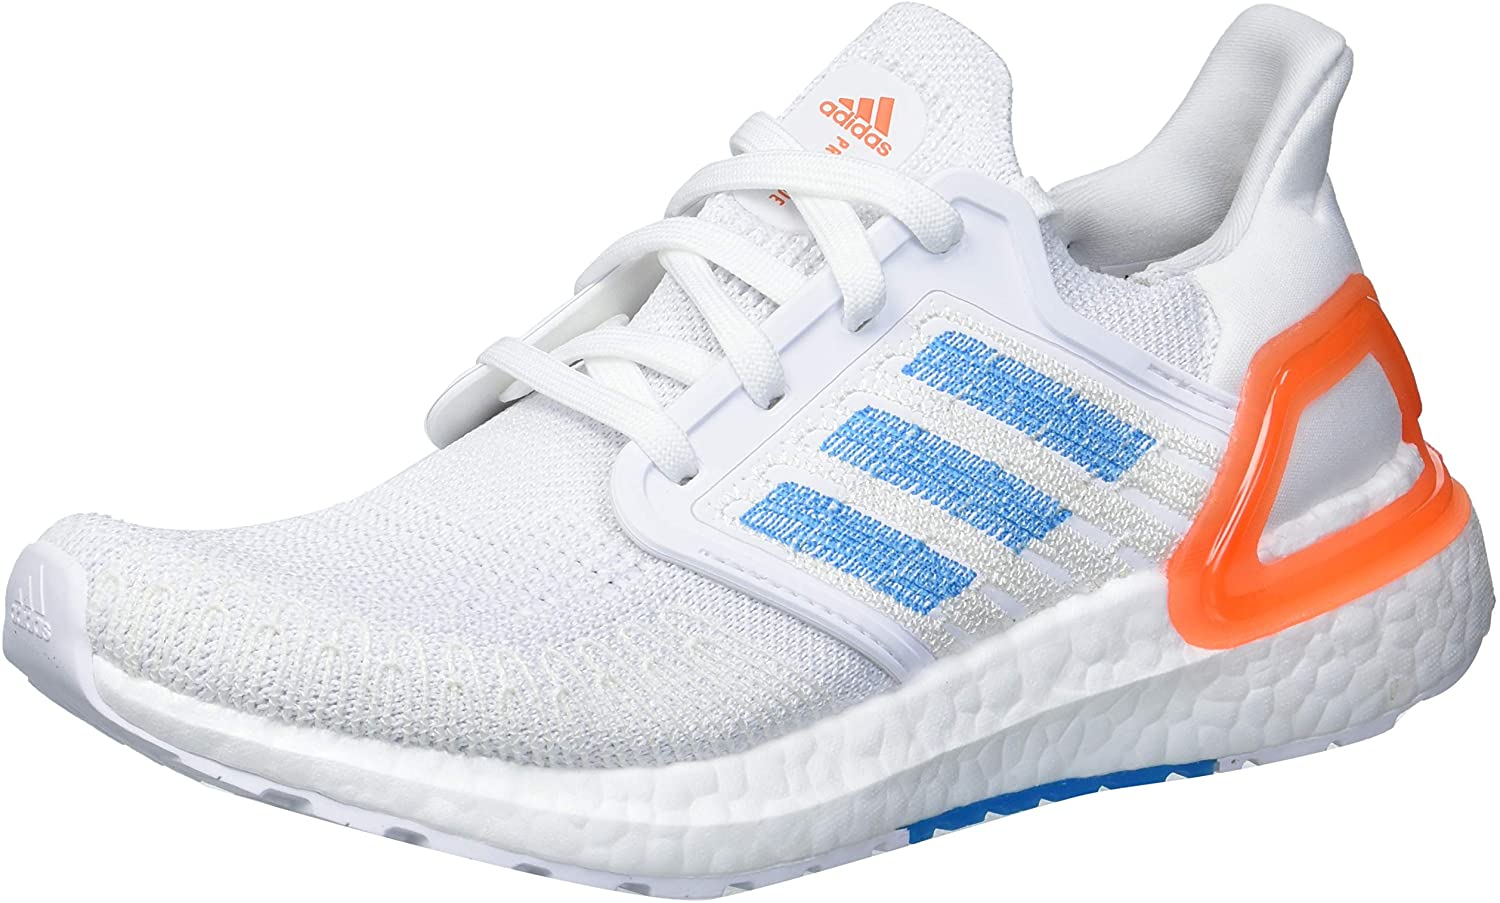 adidas Men's Clearance SALE Limited Popular product time Primeblue Ultraboost Shoe Running 20